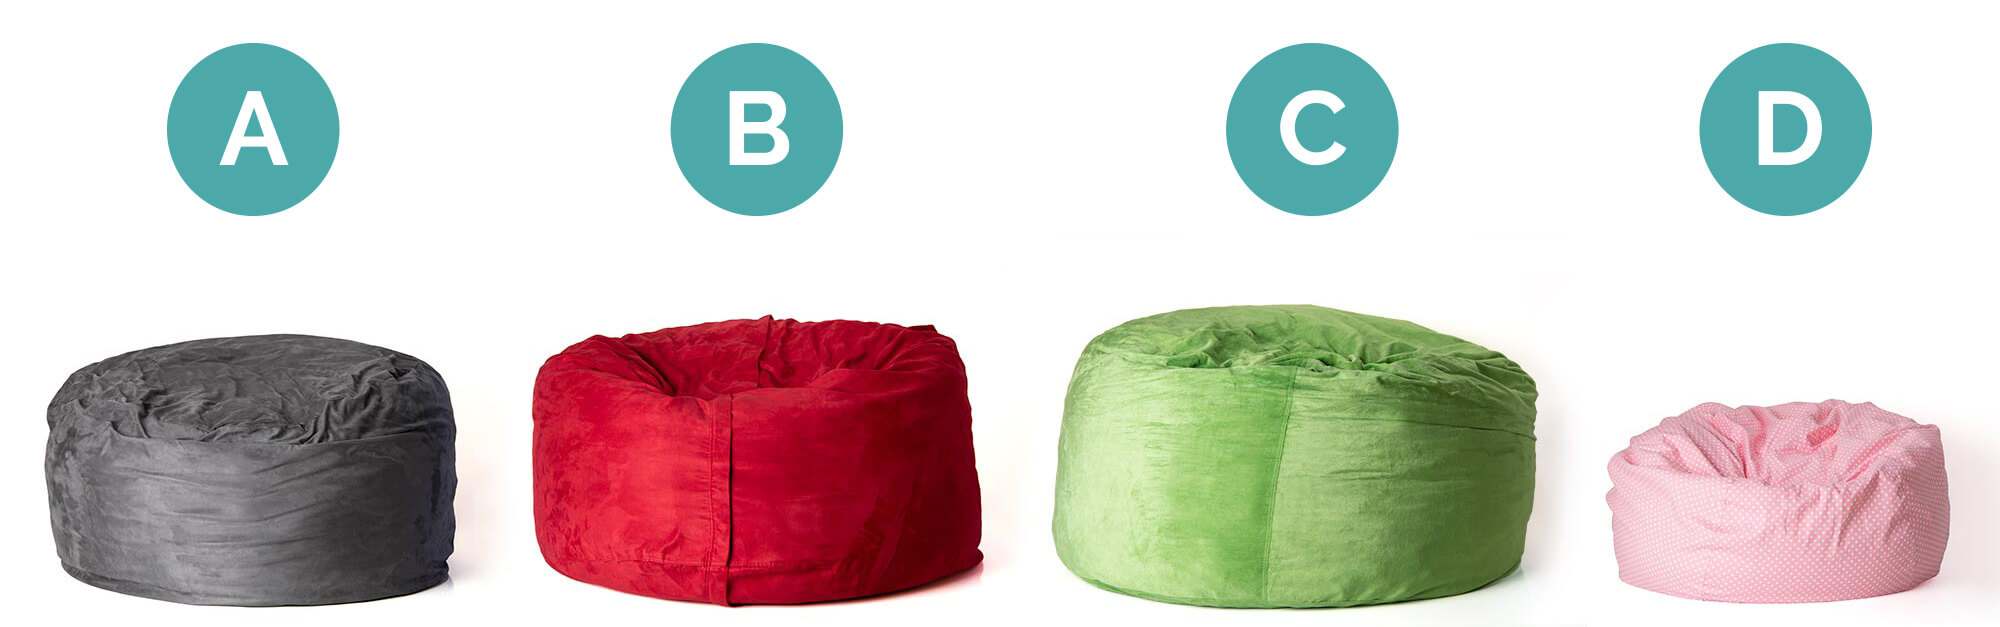 Adult Size Bean Bag Chair The Best Bean Bag Chair Of 2019 Real Testing Your Best Digs